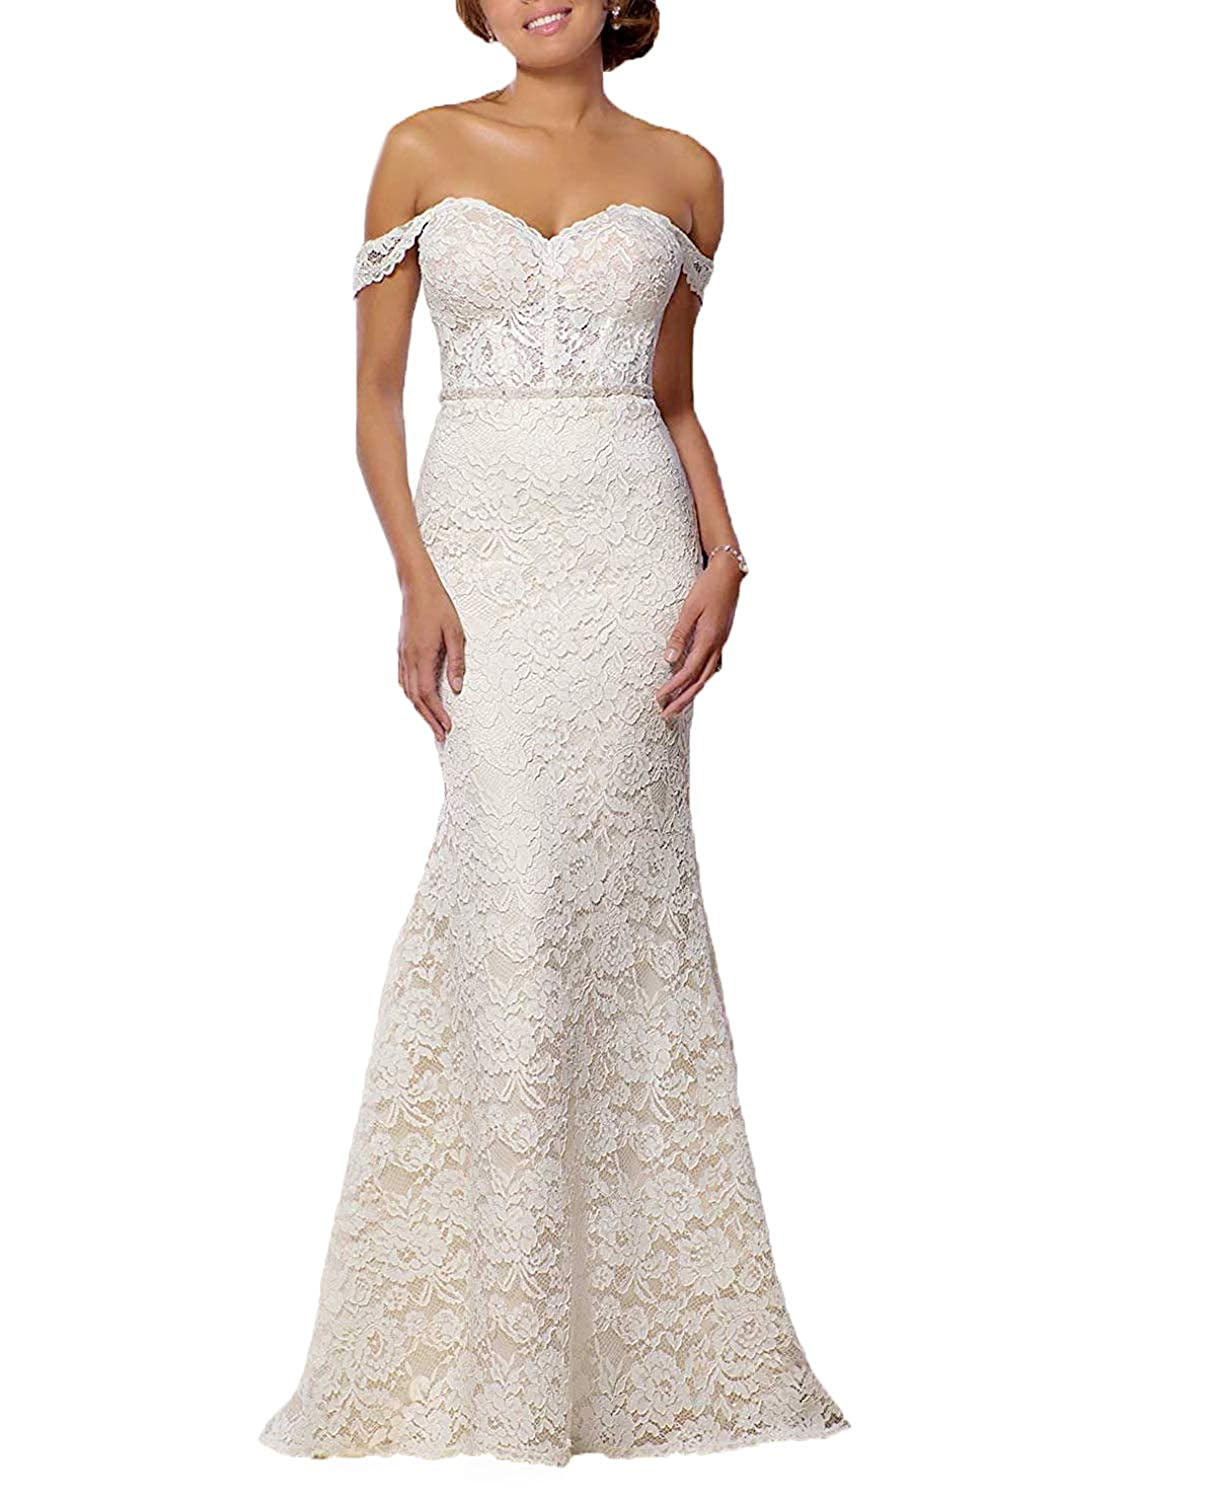 Beige Women's Lace Off Shoulder Formal Evening Gown Mermaid Prom Dress Bridesmaid